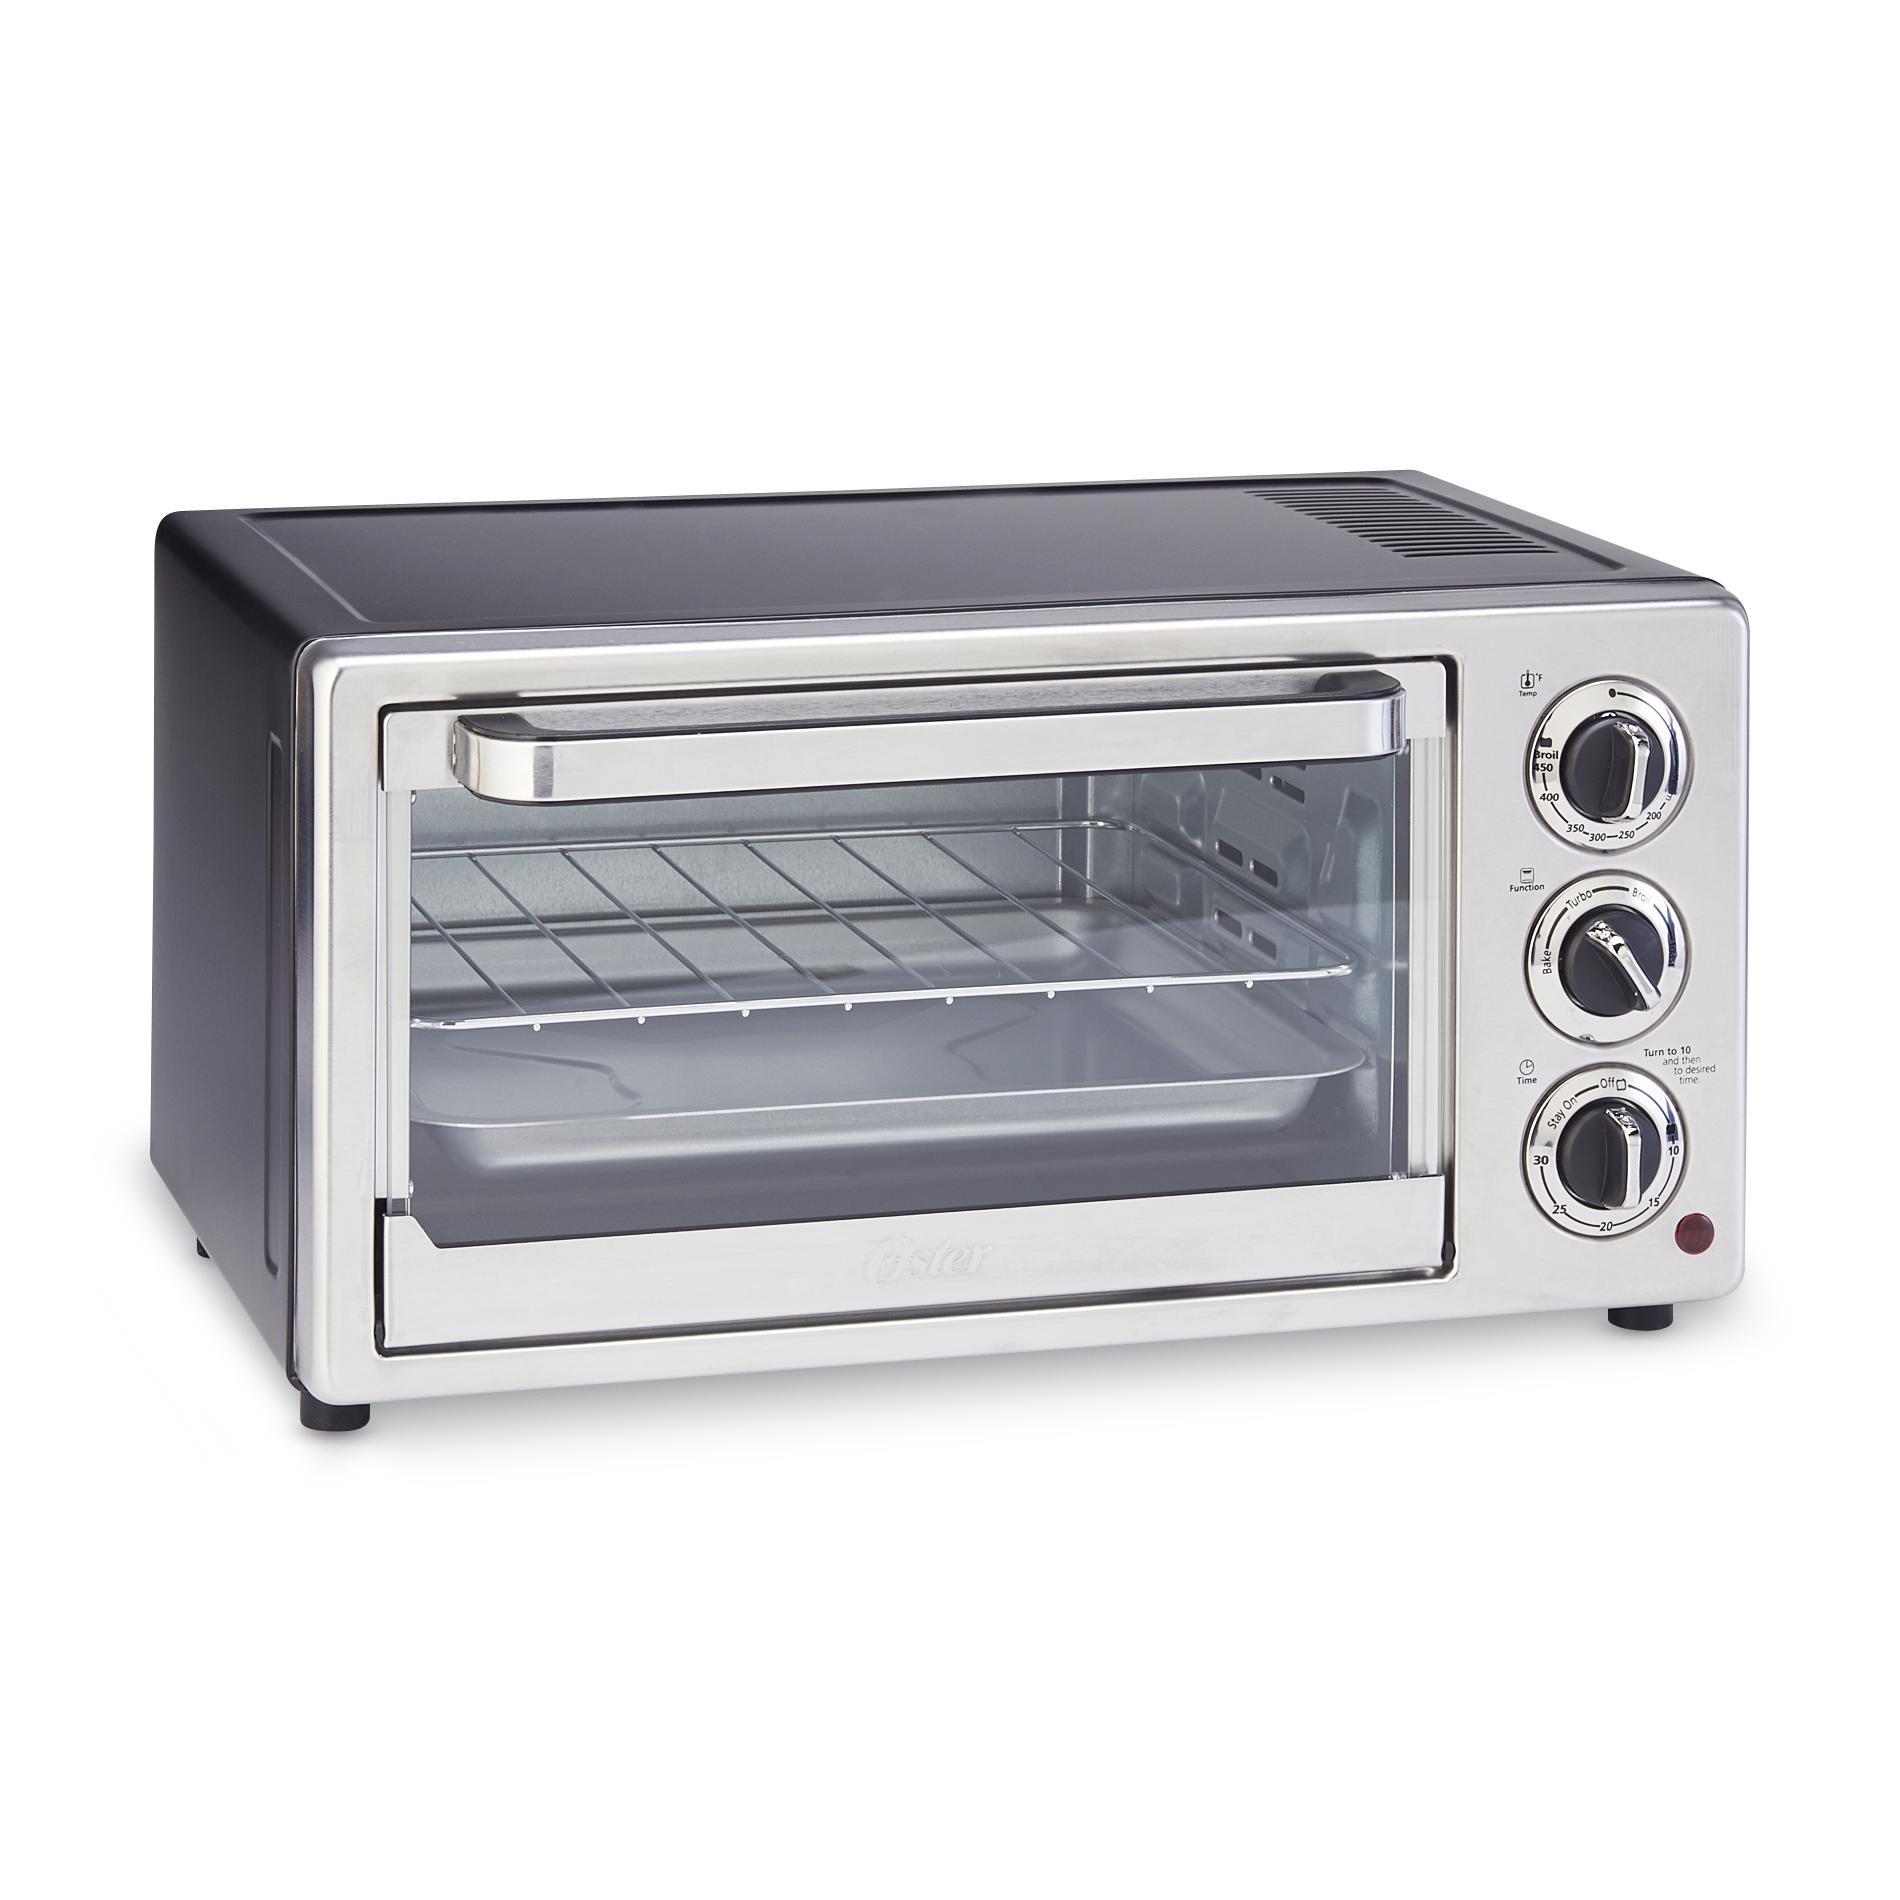 Convention Oven Oster Countertop Convection Oven Sears